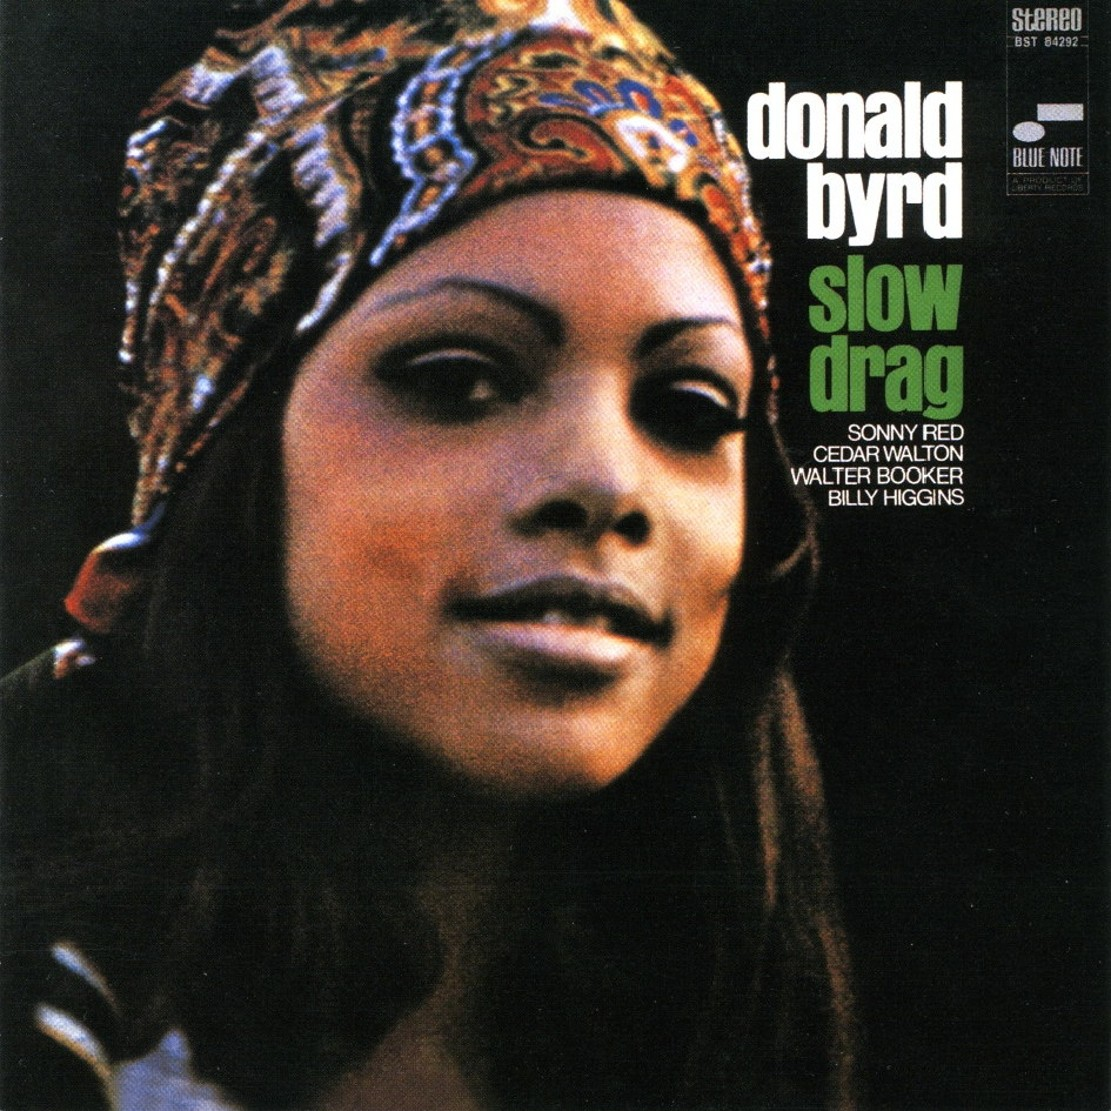 Cause Of Death Donald Loving >> kiss my black ads: The Album Art of Donald Byrd